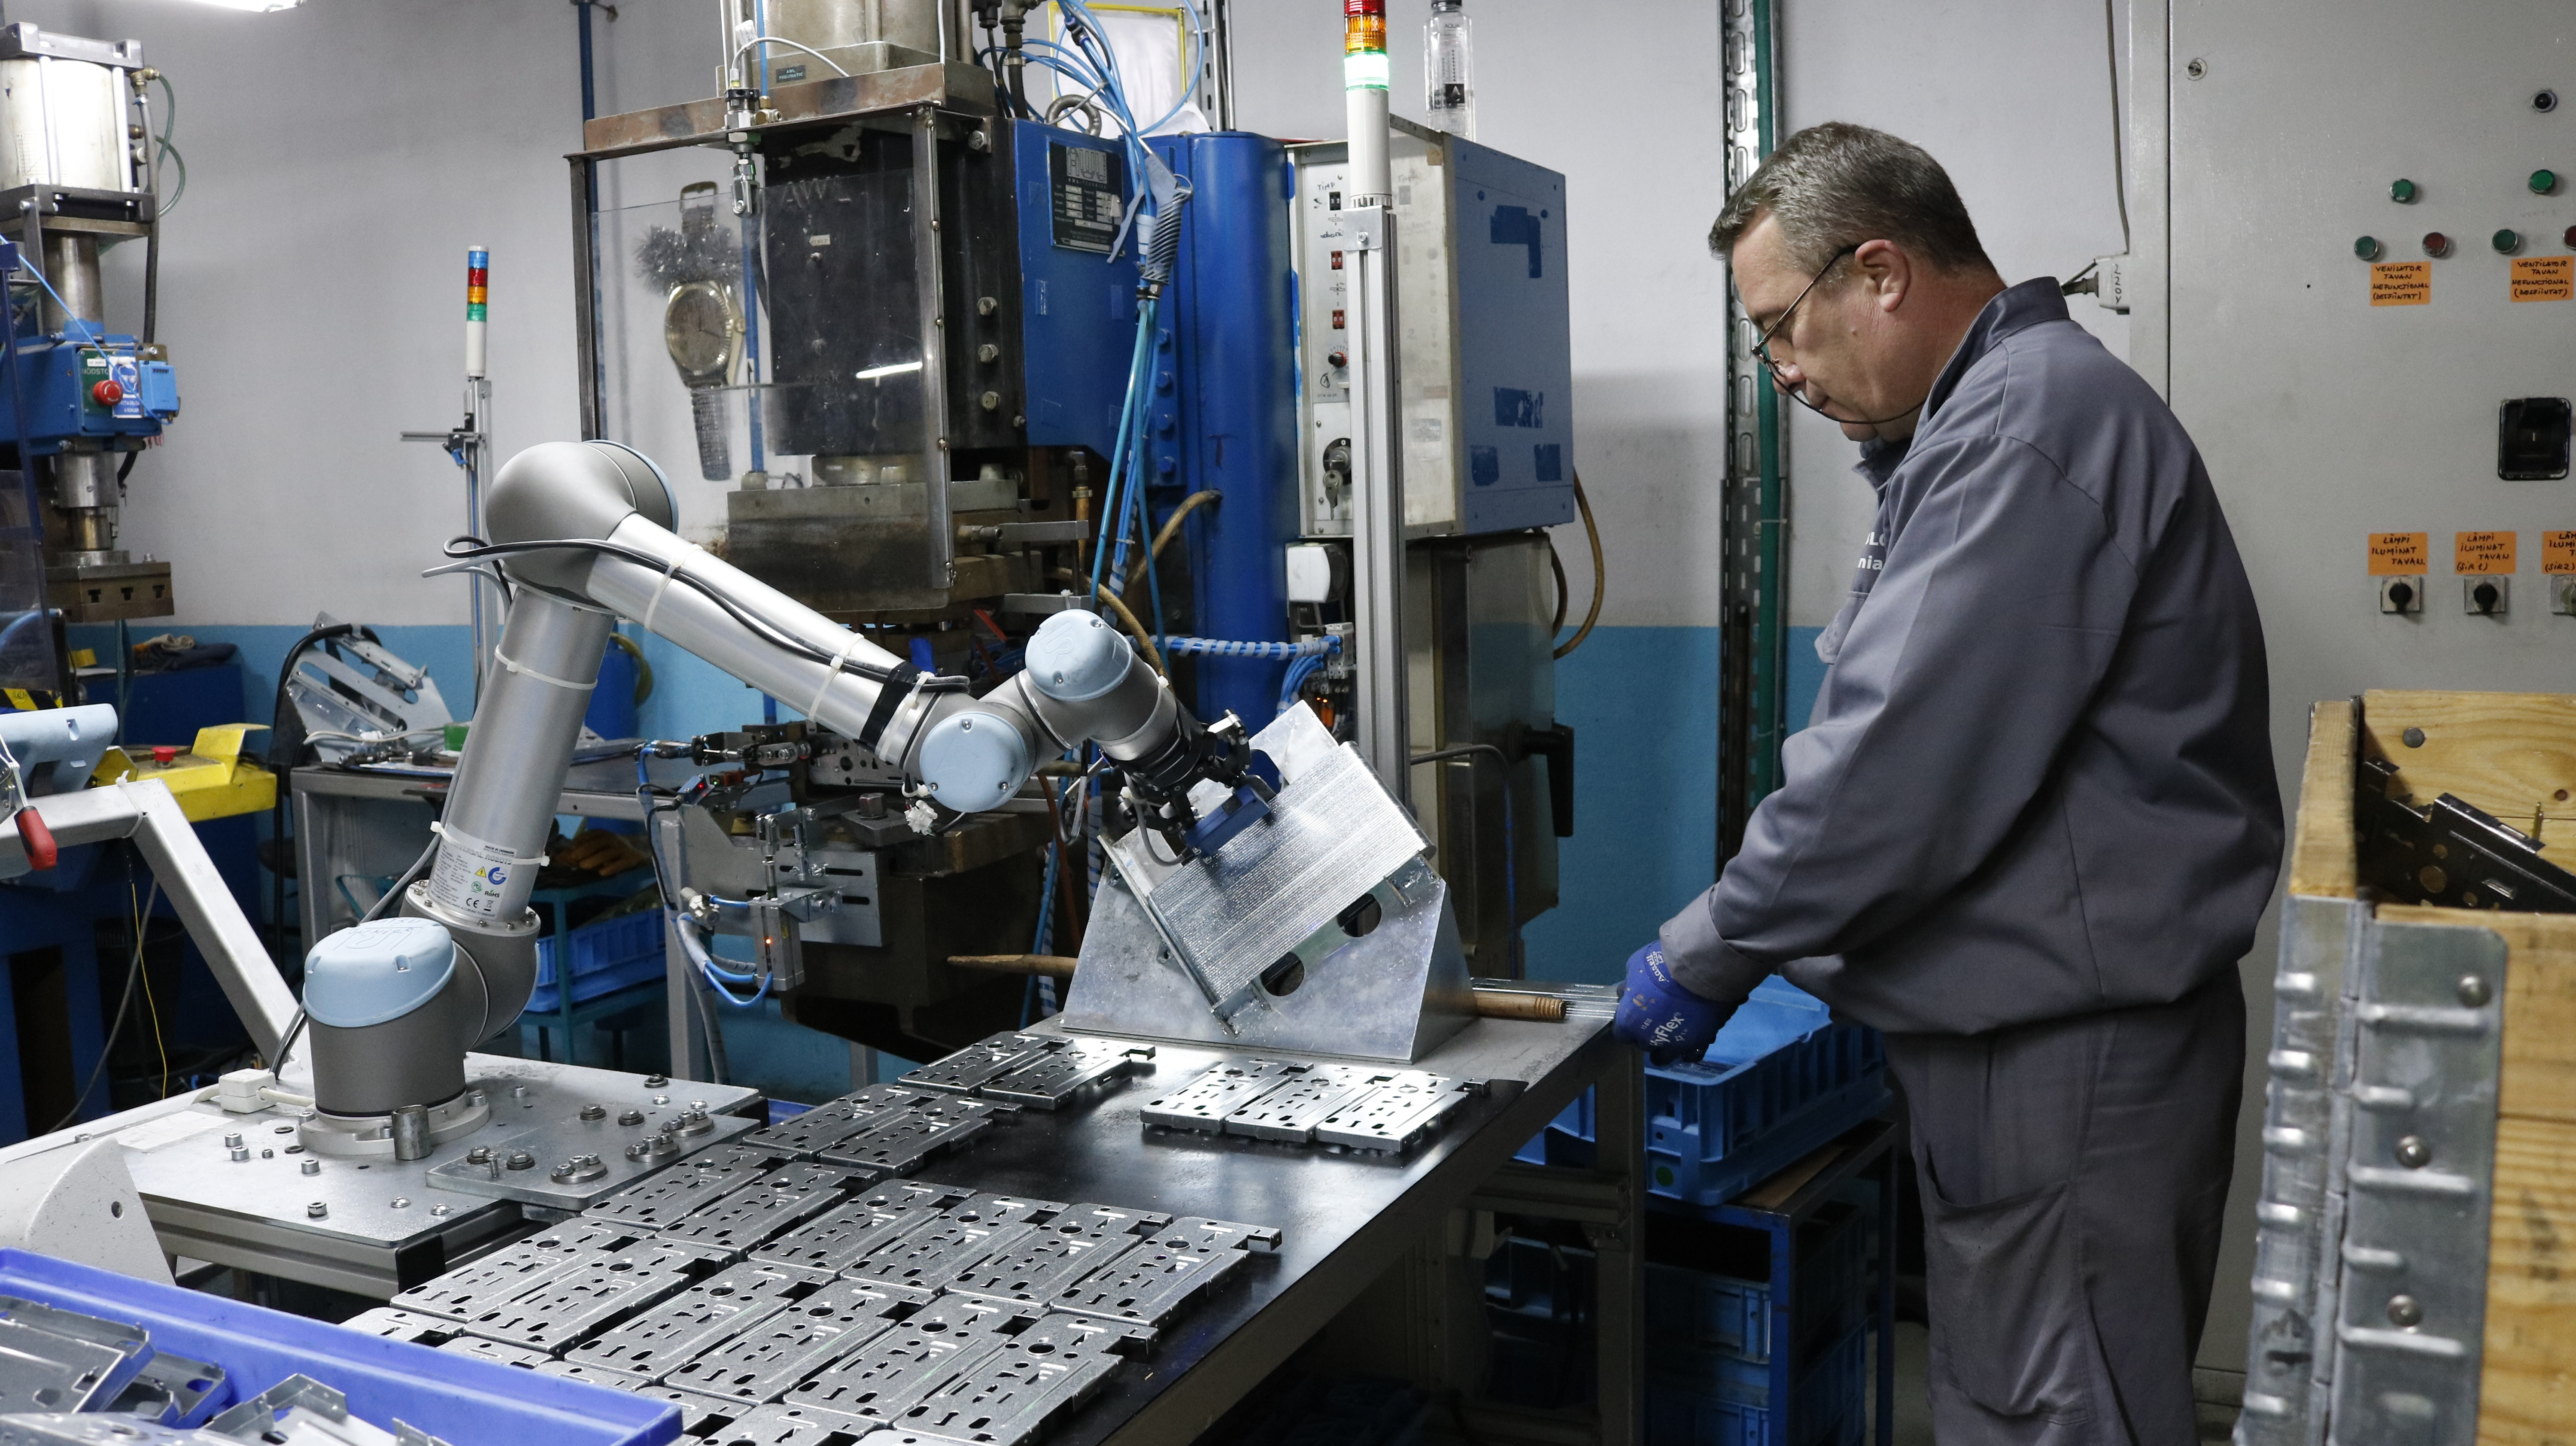 Avoid Common Robotics Hazards by Following These 6 Rules